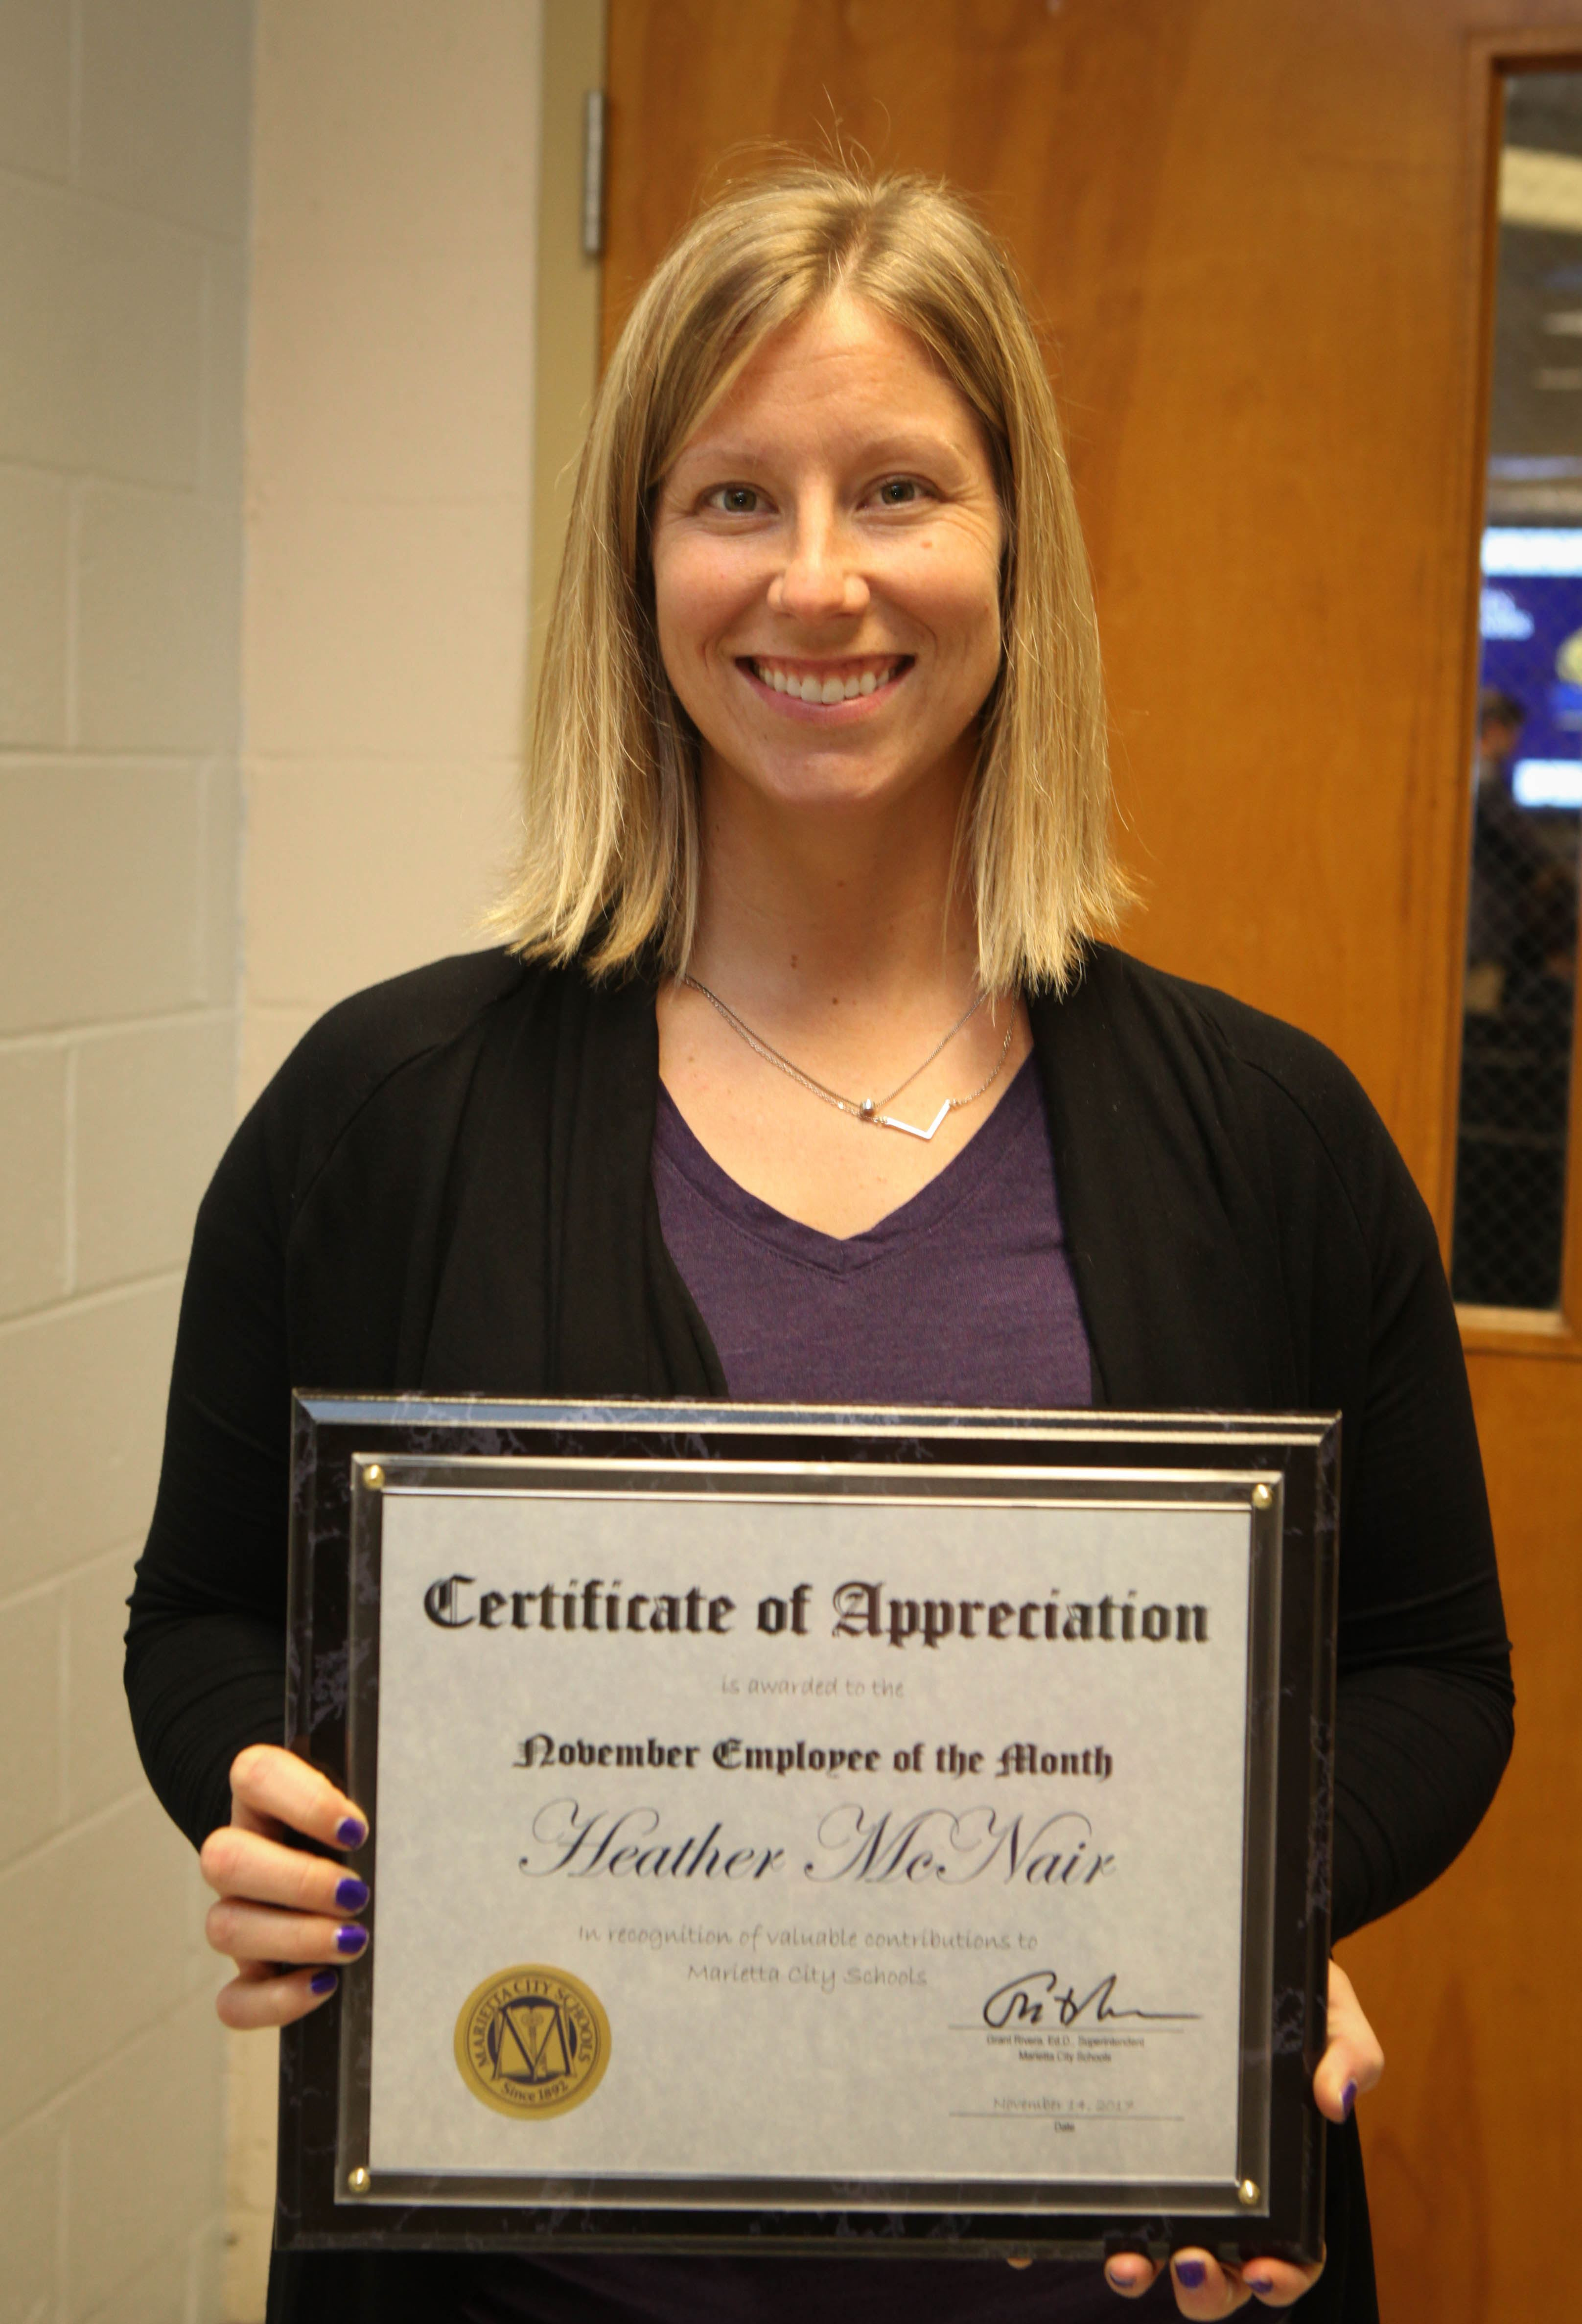 November Employee of the Month: Heather McNair